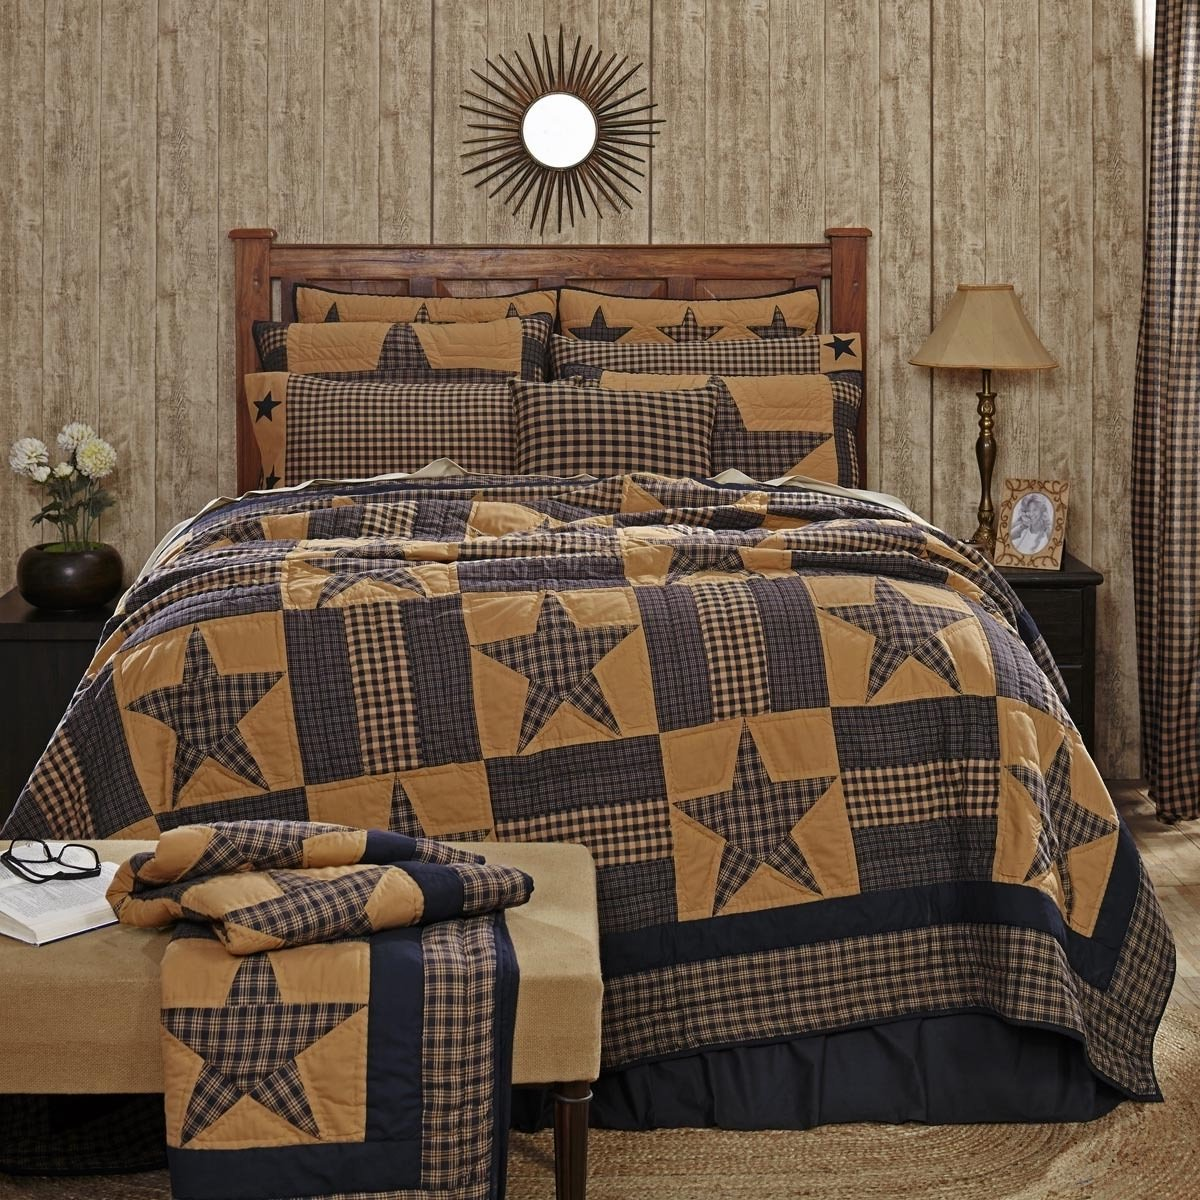 1 Piece Classic Patchwork Stars Patterned Quilt King Size, Traditional 8 Point Earthy Star Geometric Stripes Bedding, Bold Rustic Checkered Lines, Vintage French Country Style Bedroom, Tan, Navy